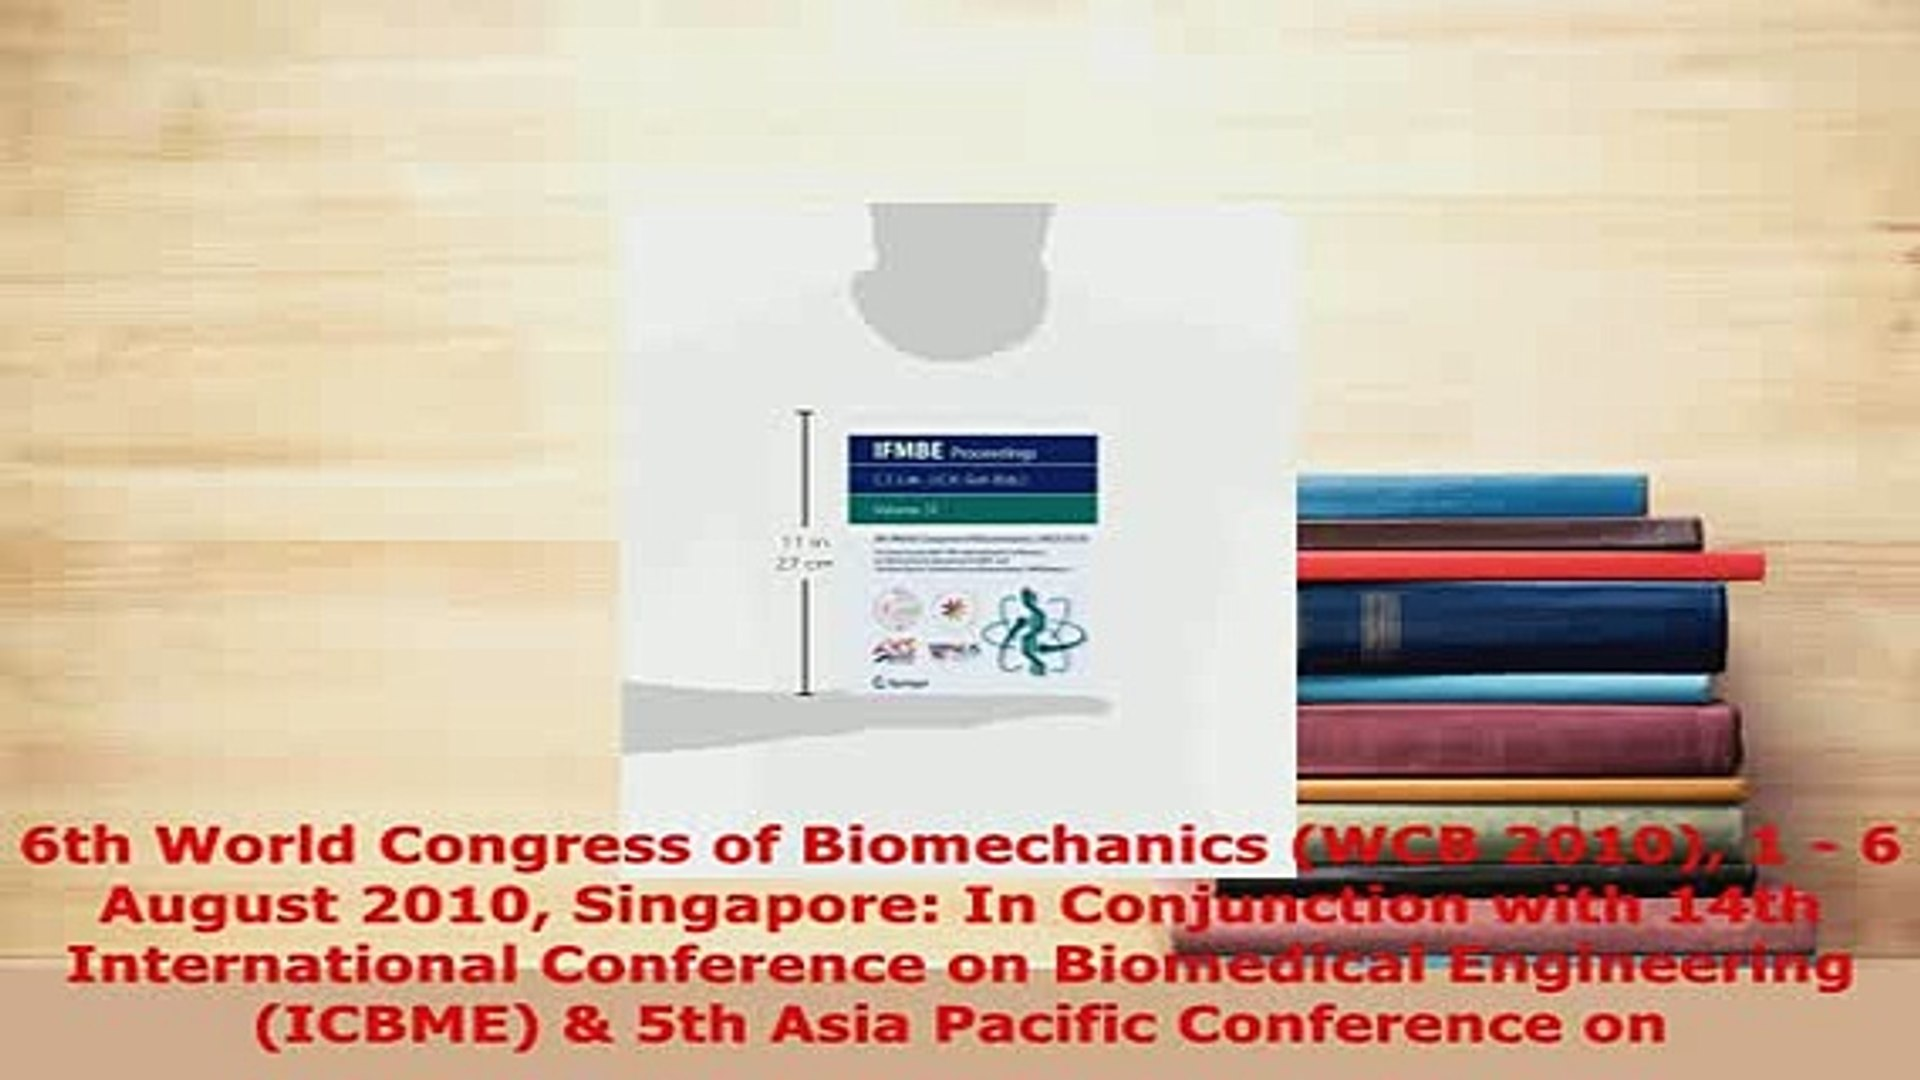 7th WACBE World Congress on Bioengineering 2015: 6th to 8th July, 2015, Singapore